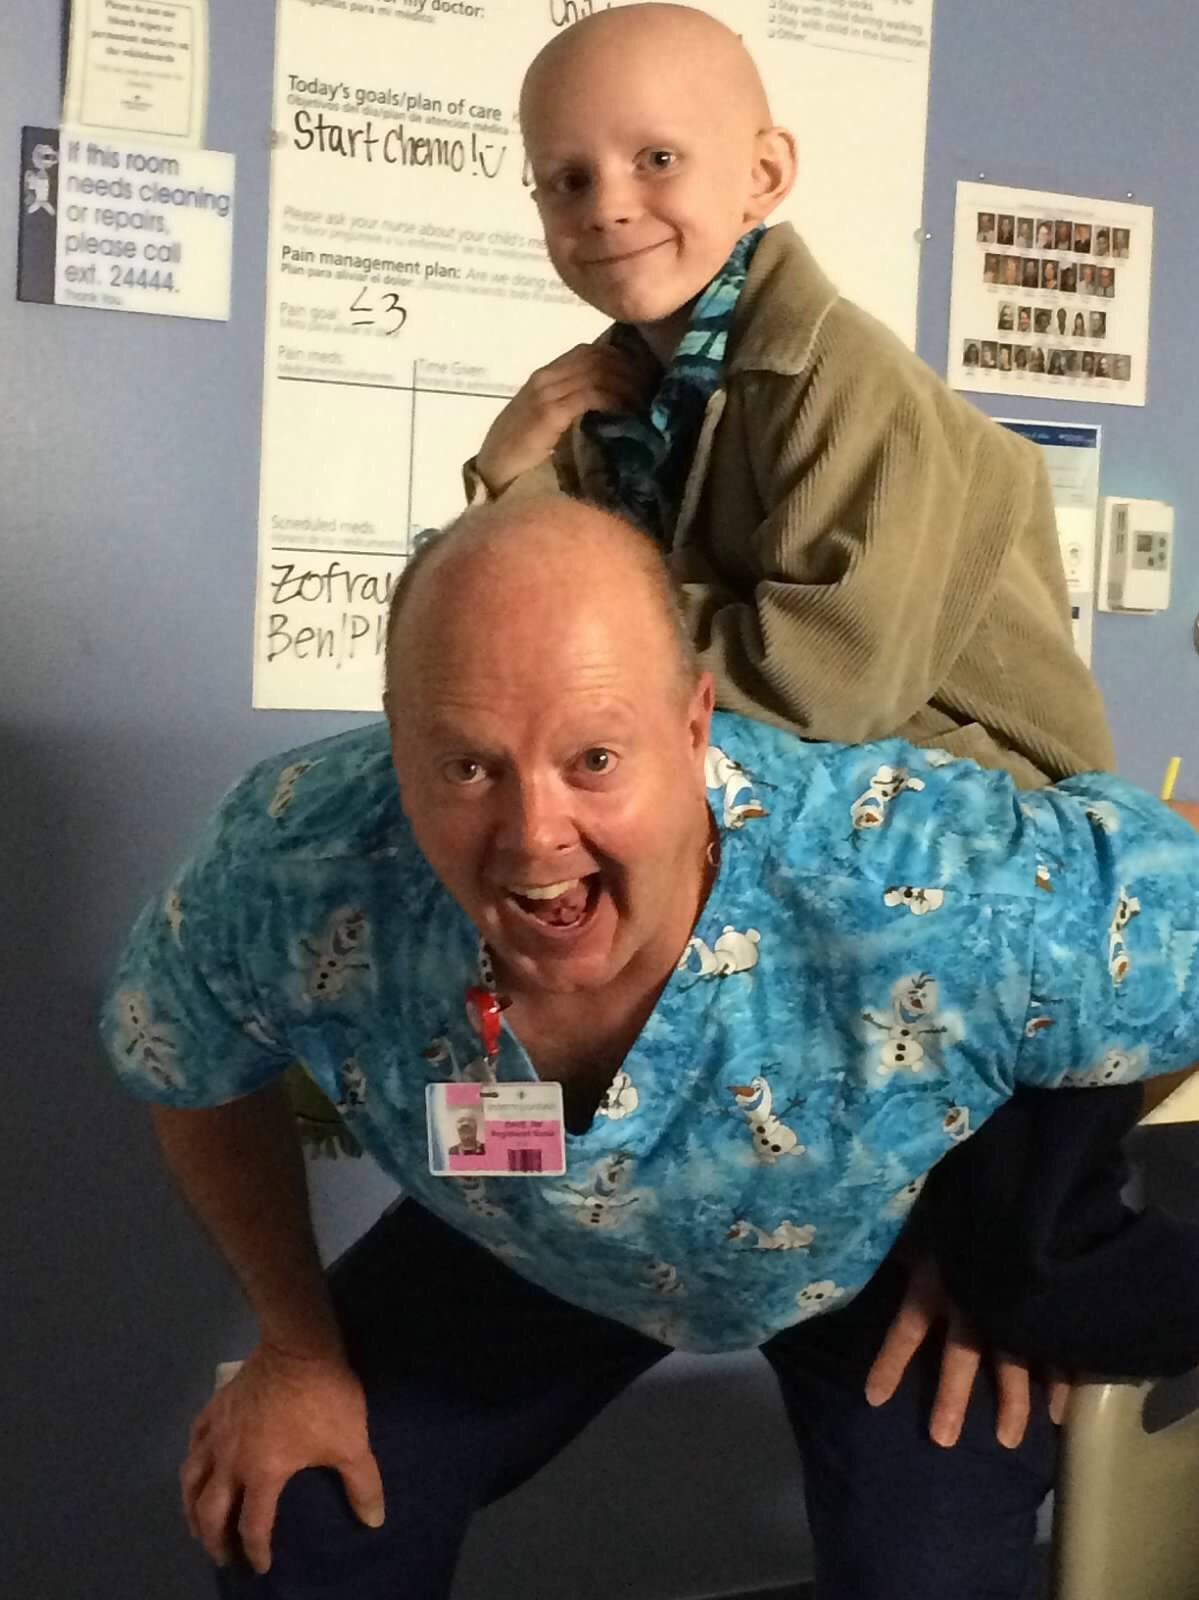 George Stafford hangs out piggyback on a hospital staff member, grinning away. George's treatments were given variously between Dixie Regional Medical Center and Primary Children's Hospital, St. George/Salt Lake City, Utah, circa 2014-15 | Photo courtesy of Travis and Jen Stafford, St. George News